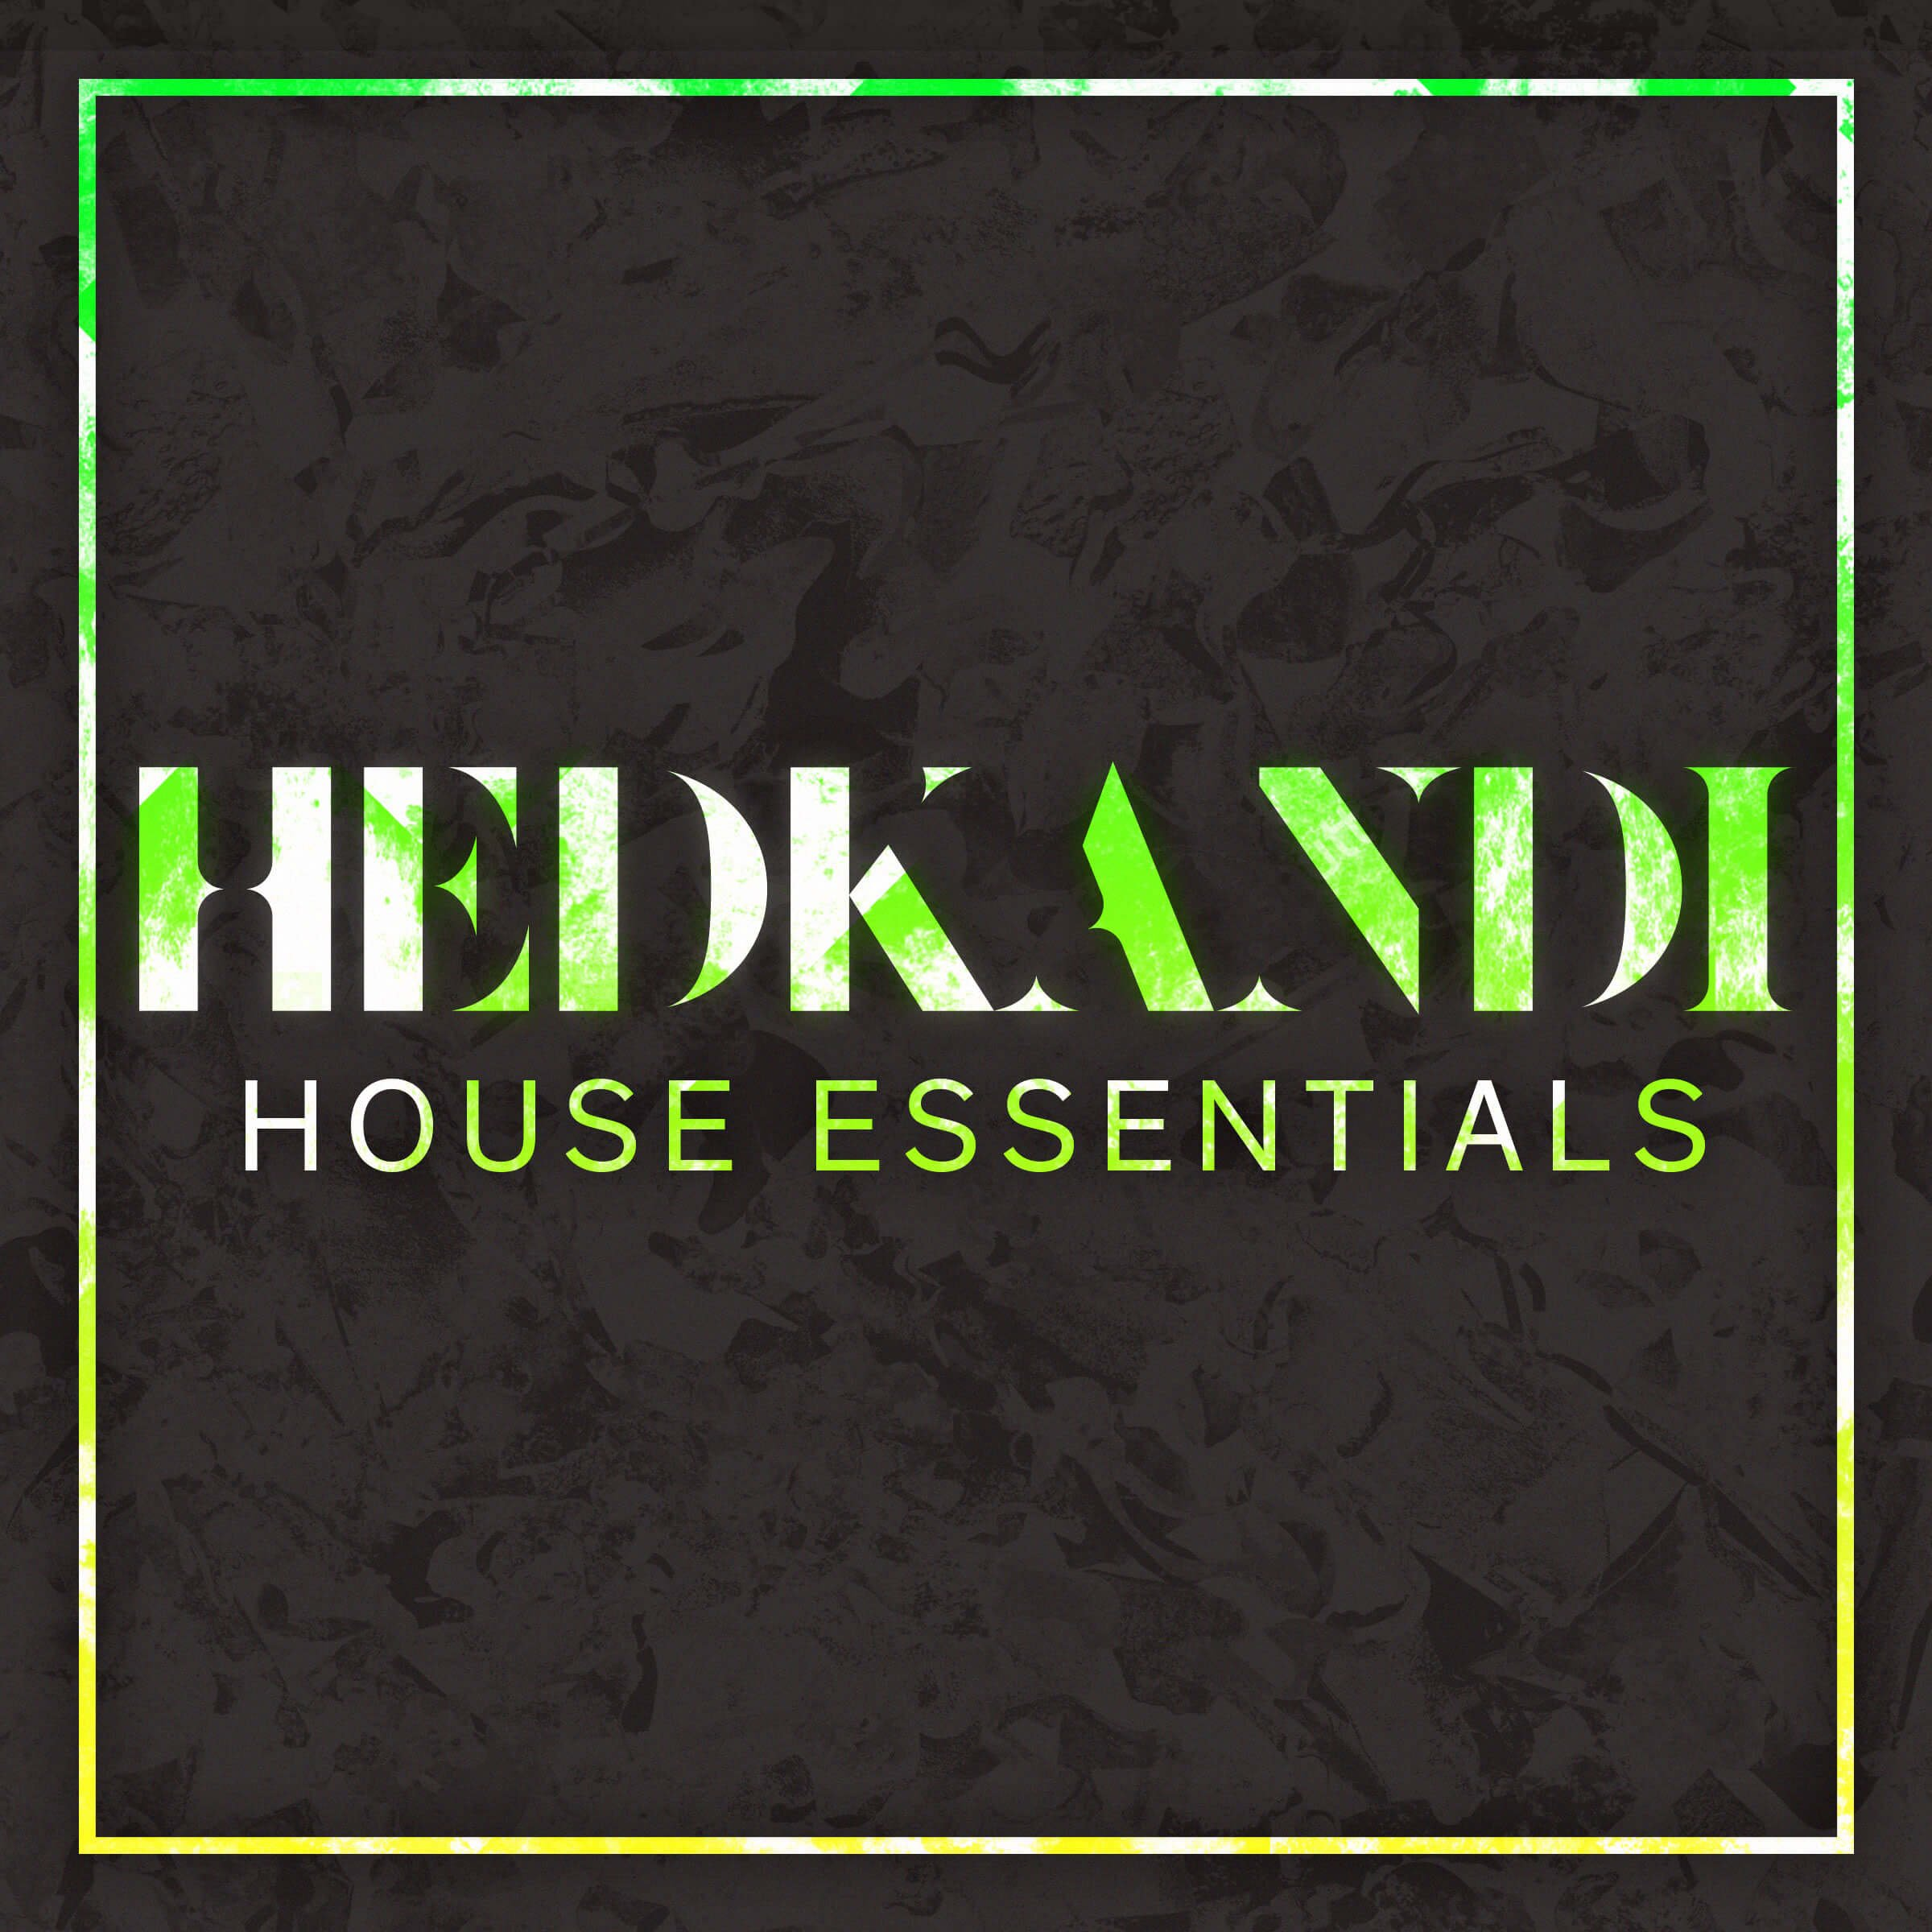 Hed kandi house essentials ableton classic synth sounds for Classic house synths